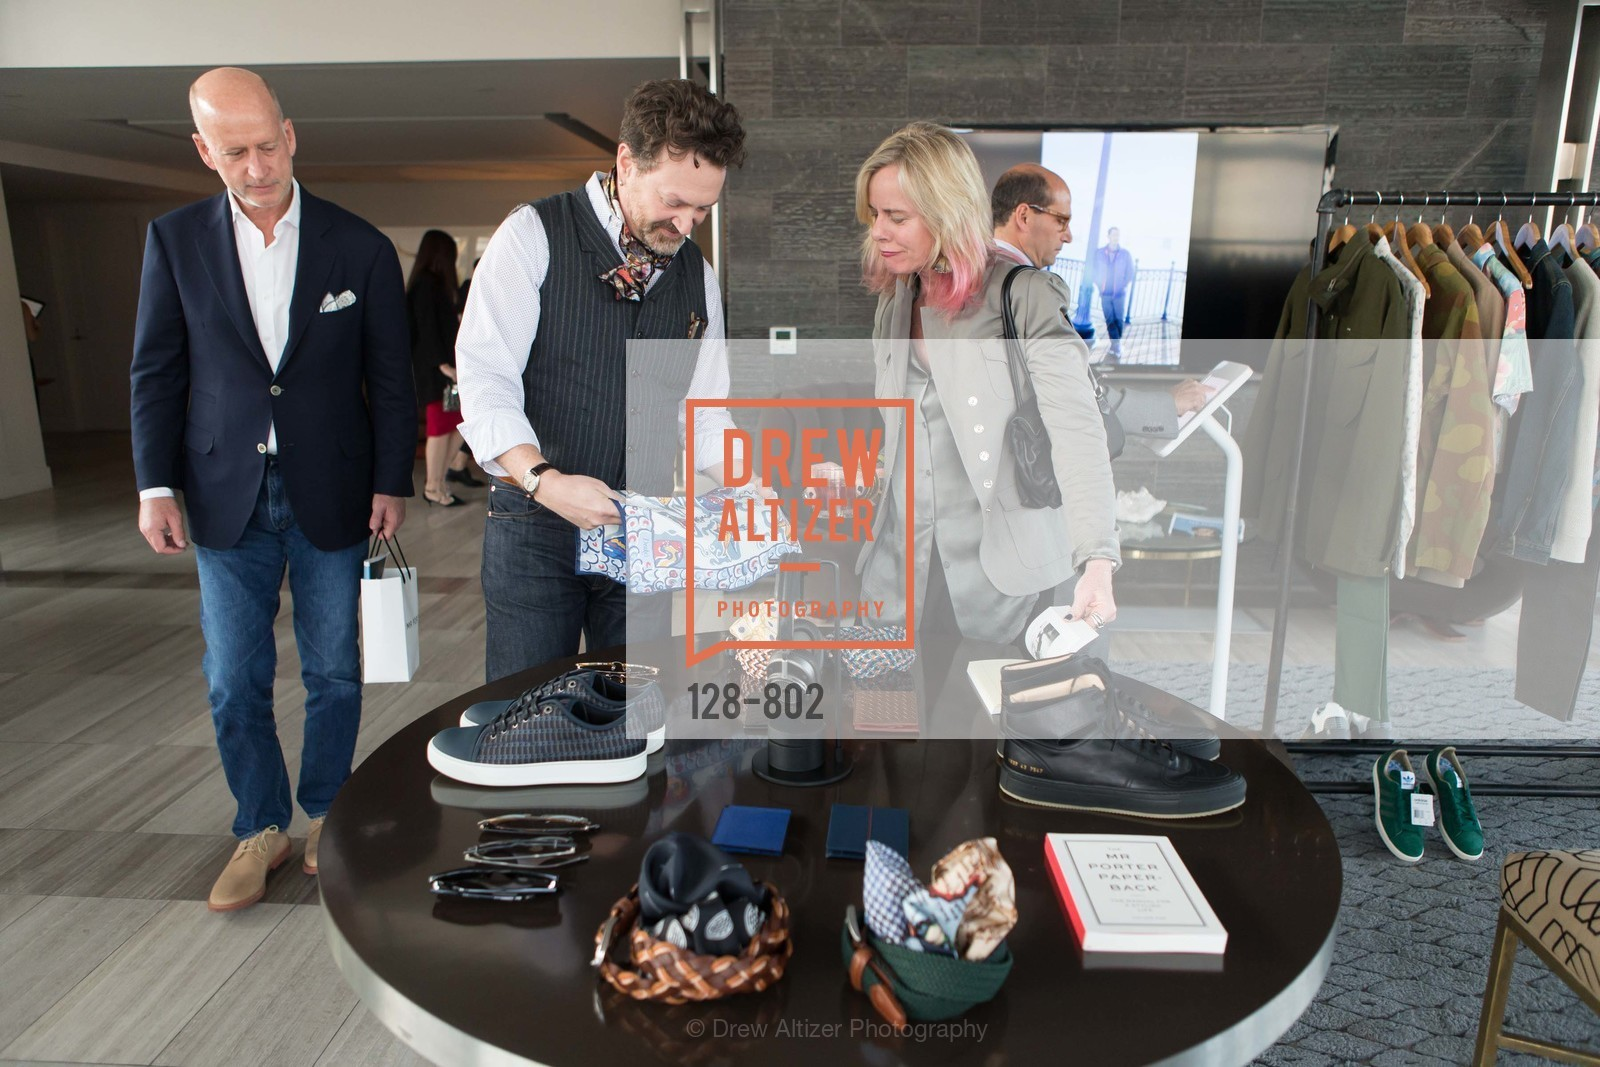 Gus Wallbolt, Paul D'Orleans, Susan McLaughlin, MR PORTER Celebrate The San Francisco Issue of The Journal, US, April 23rd, 2015,Drew Altizer, Drew Altizer Photography, full-service agency, private events, San Francisco photographer, photographer california